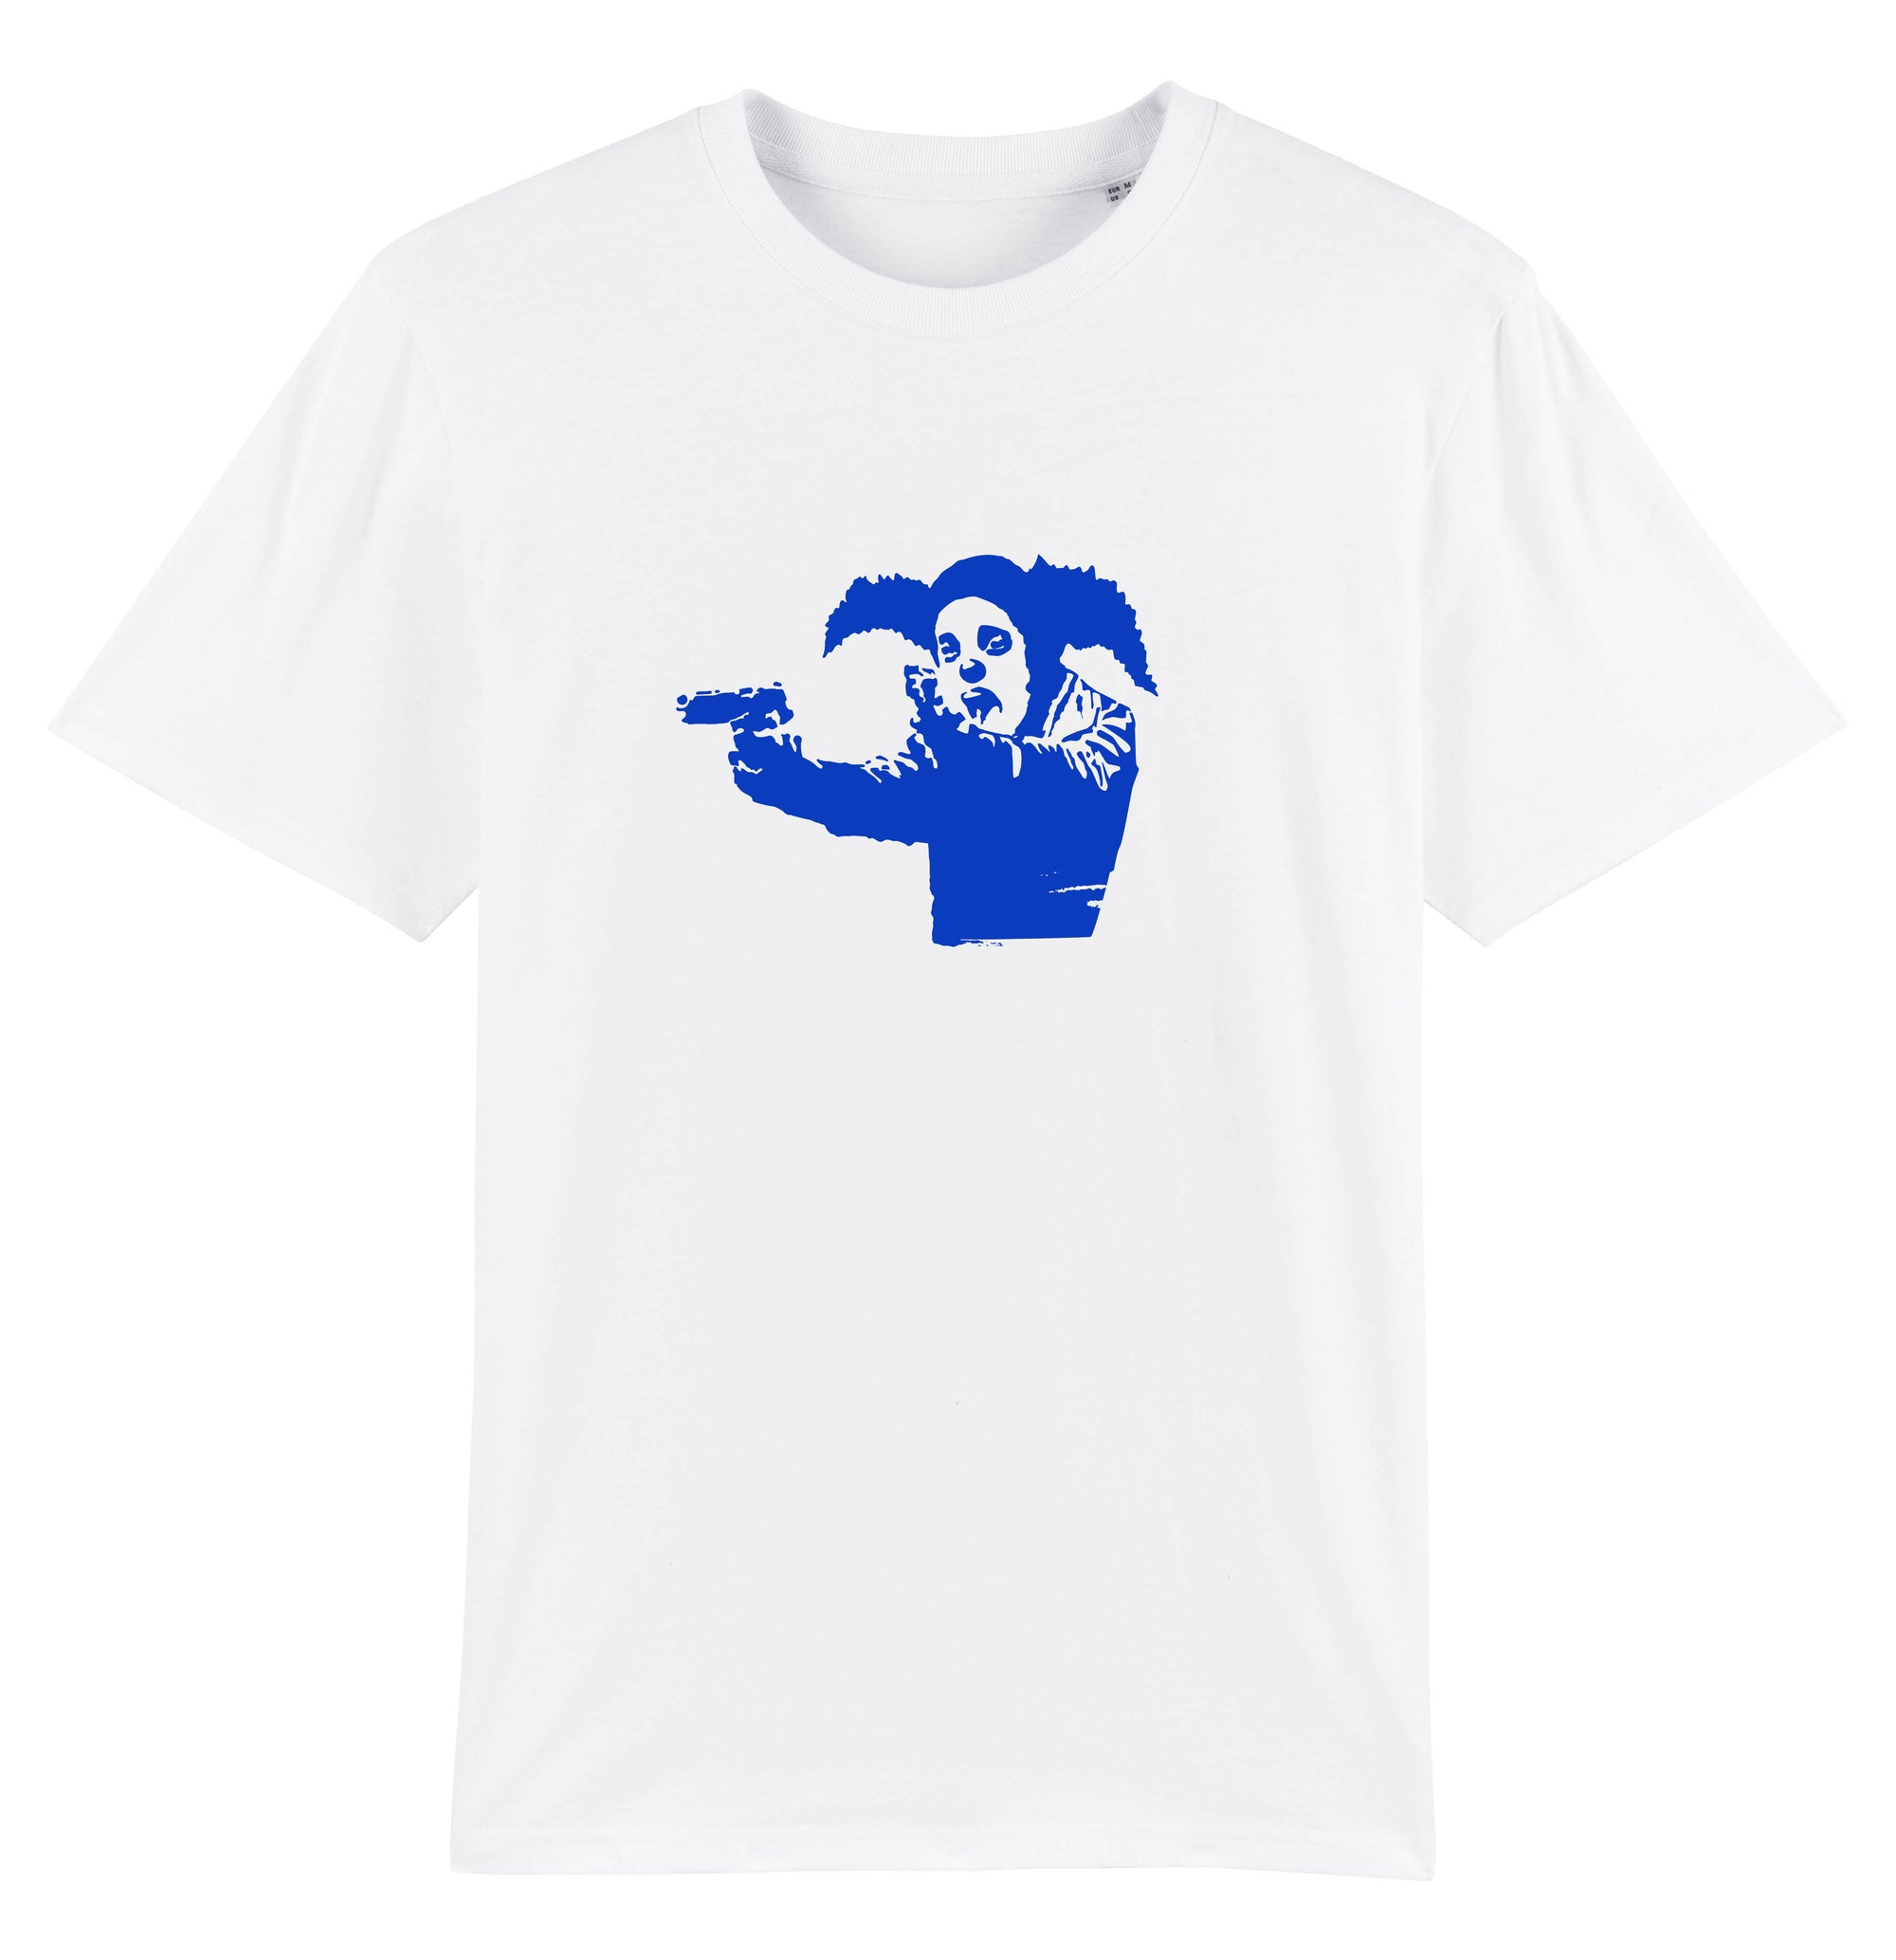 Clown Skateboards Team  T-shirt - White/Blue